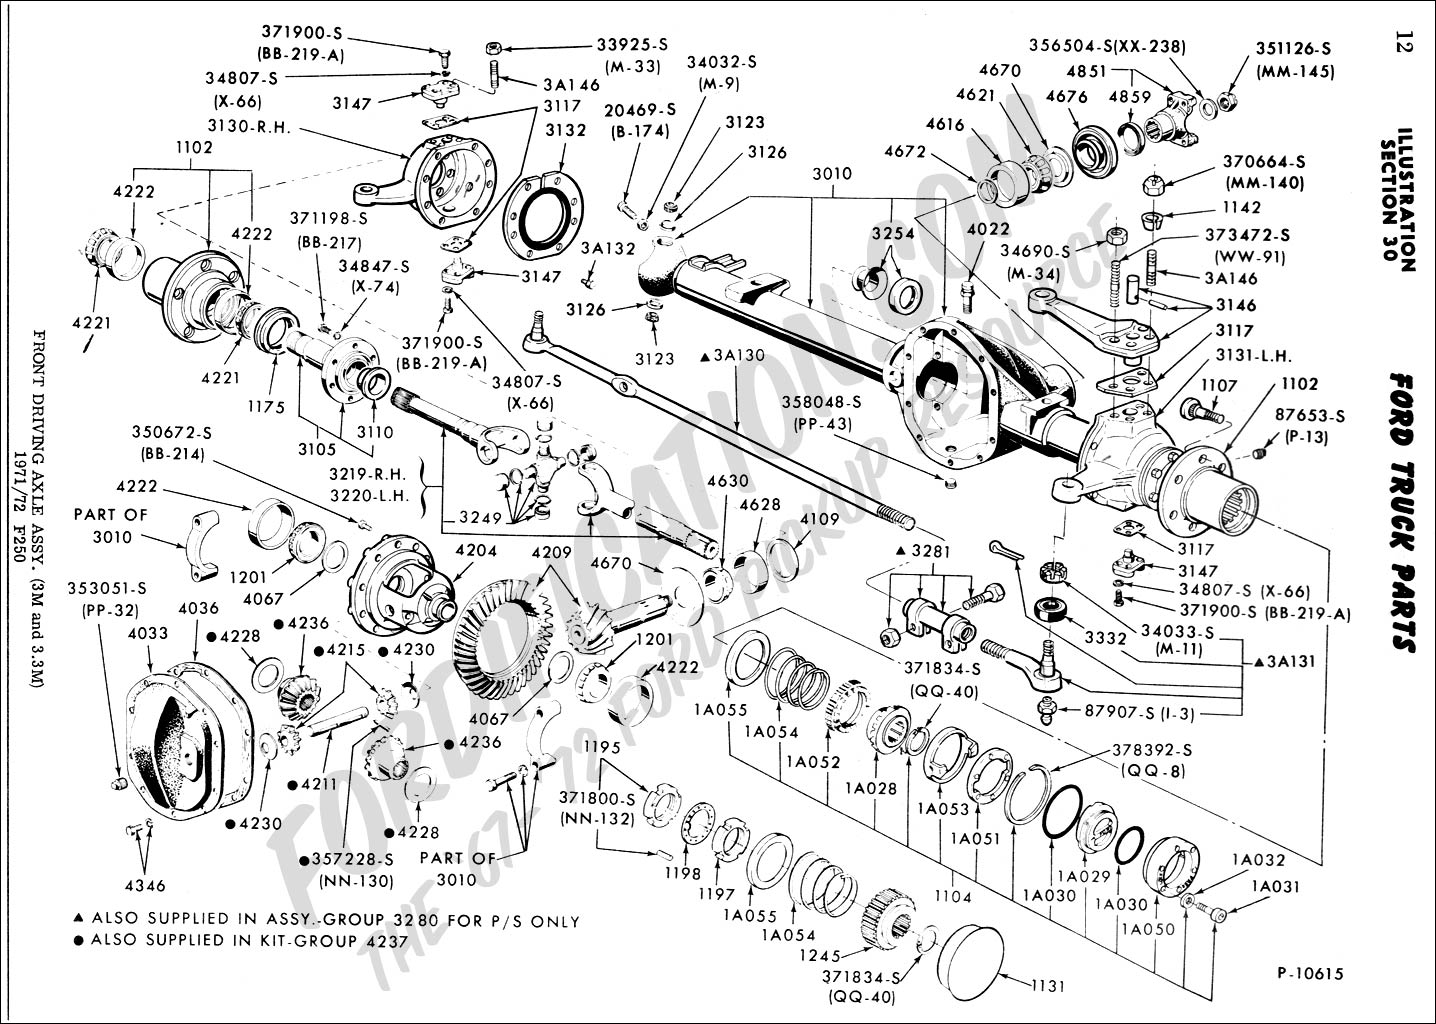 1999 F250 Super Duty Front Axle Diagram Wiring Diagrams Img 99 F150 Schematic Ford F 250 Schema